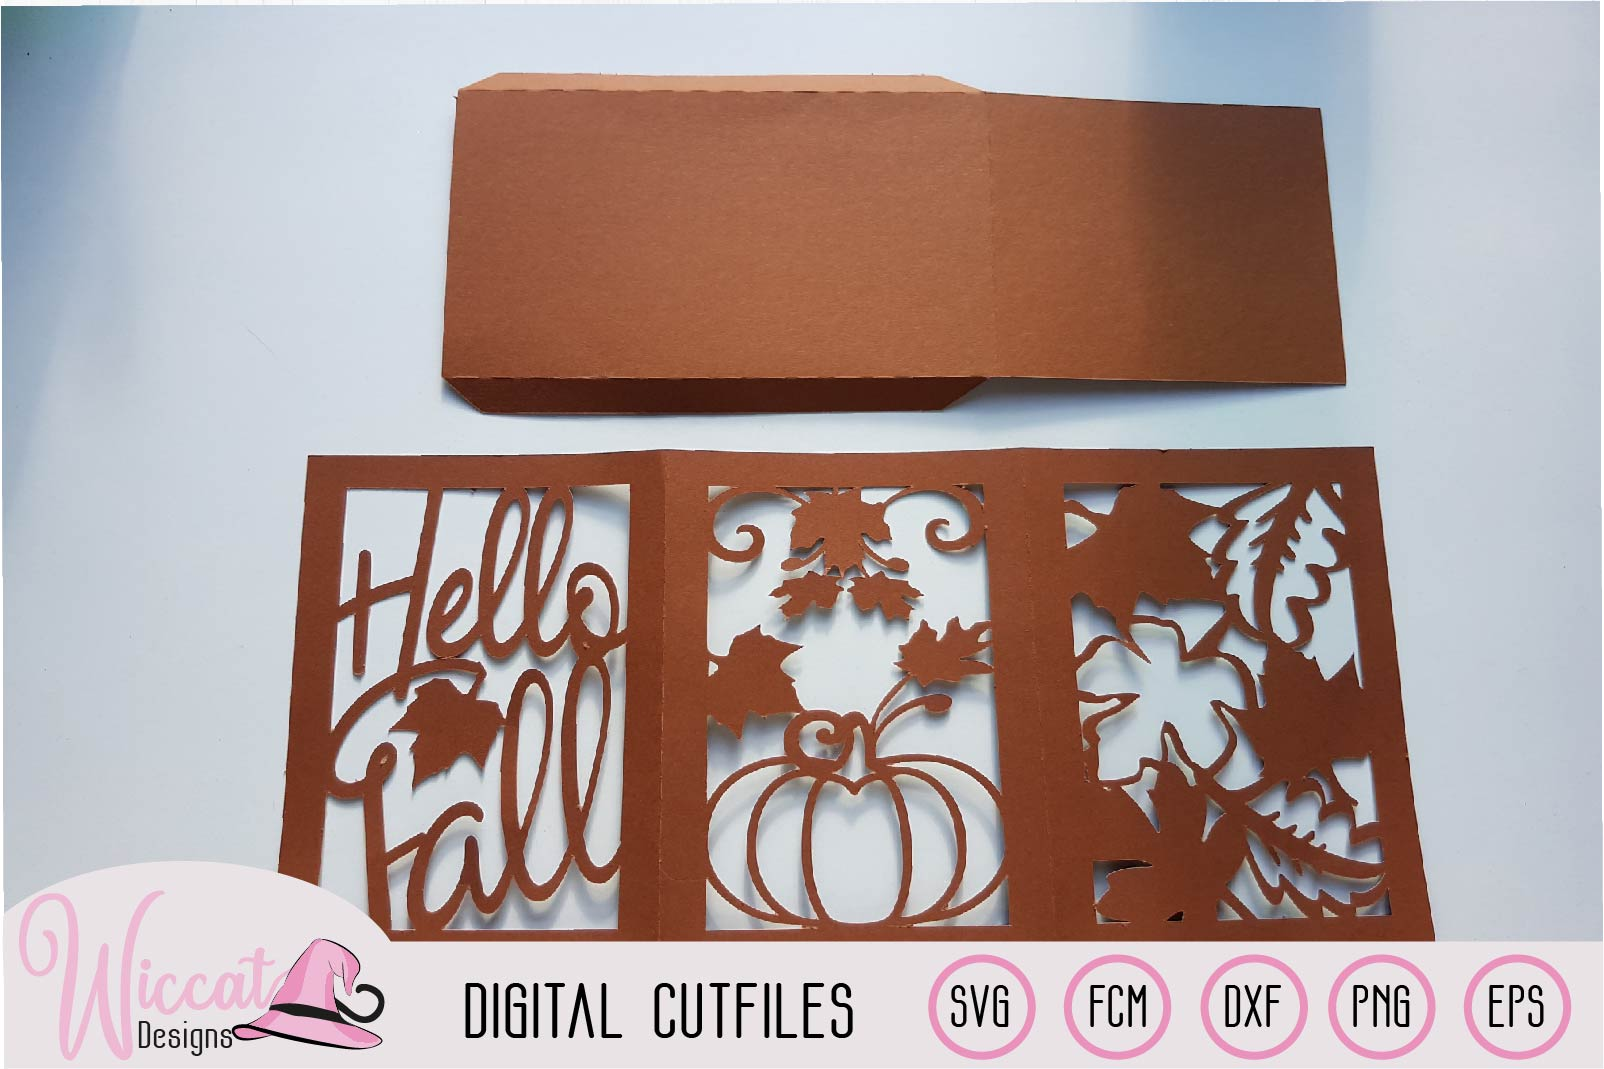 Happy fall lantern template, pumpkin and leaves, paper craft example image 3